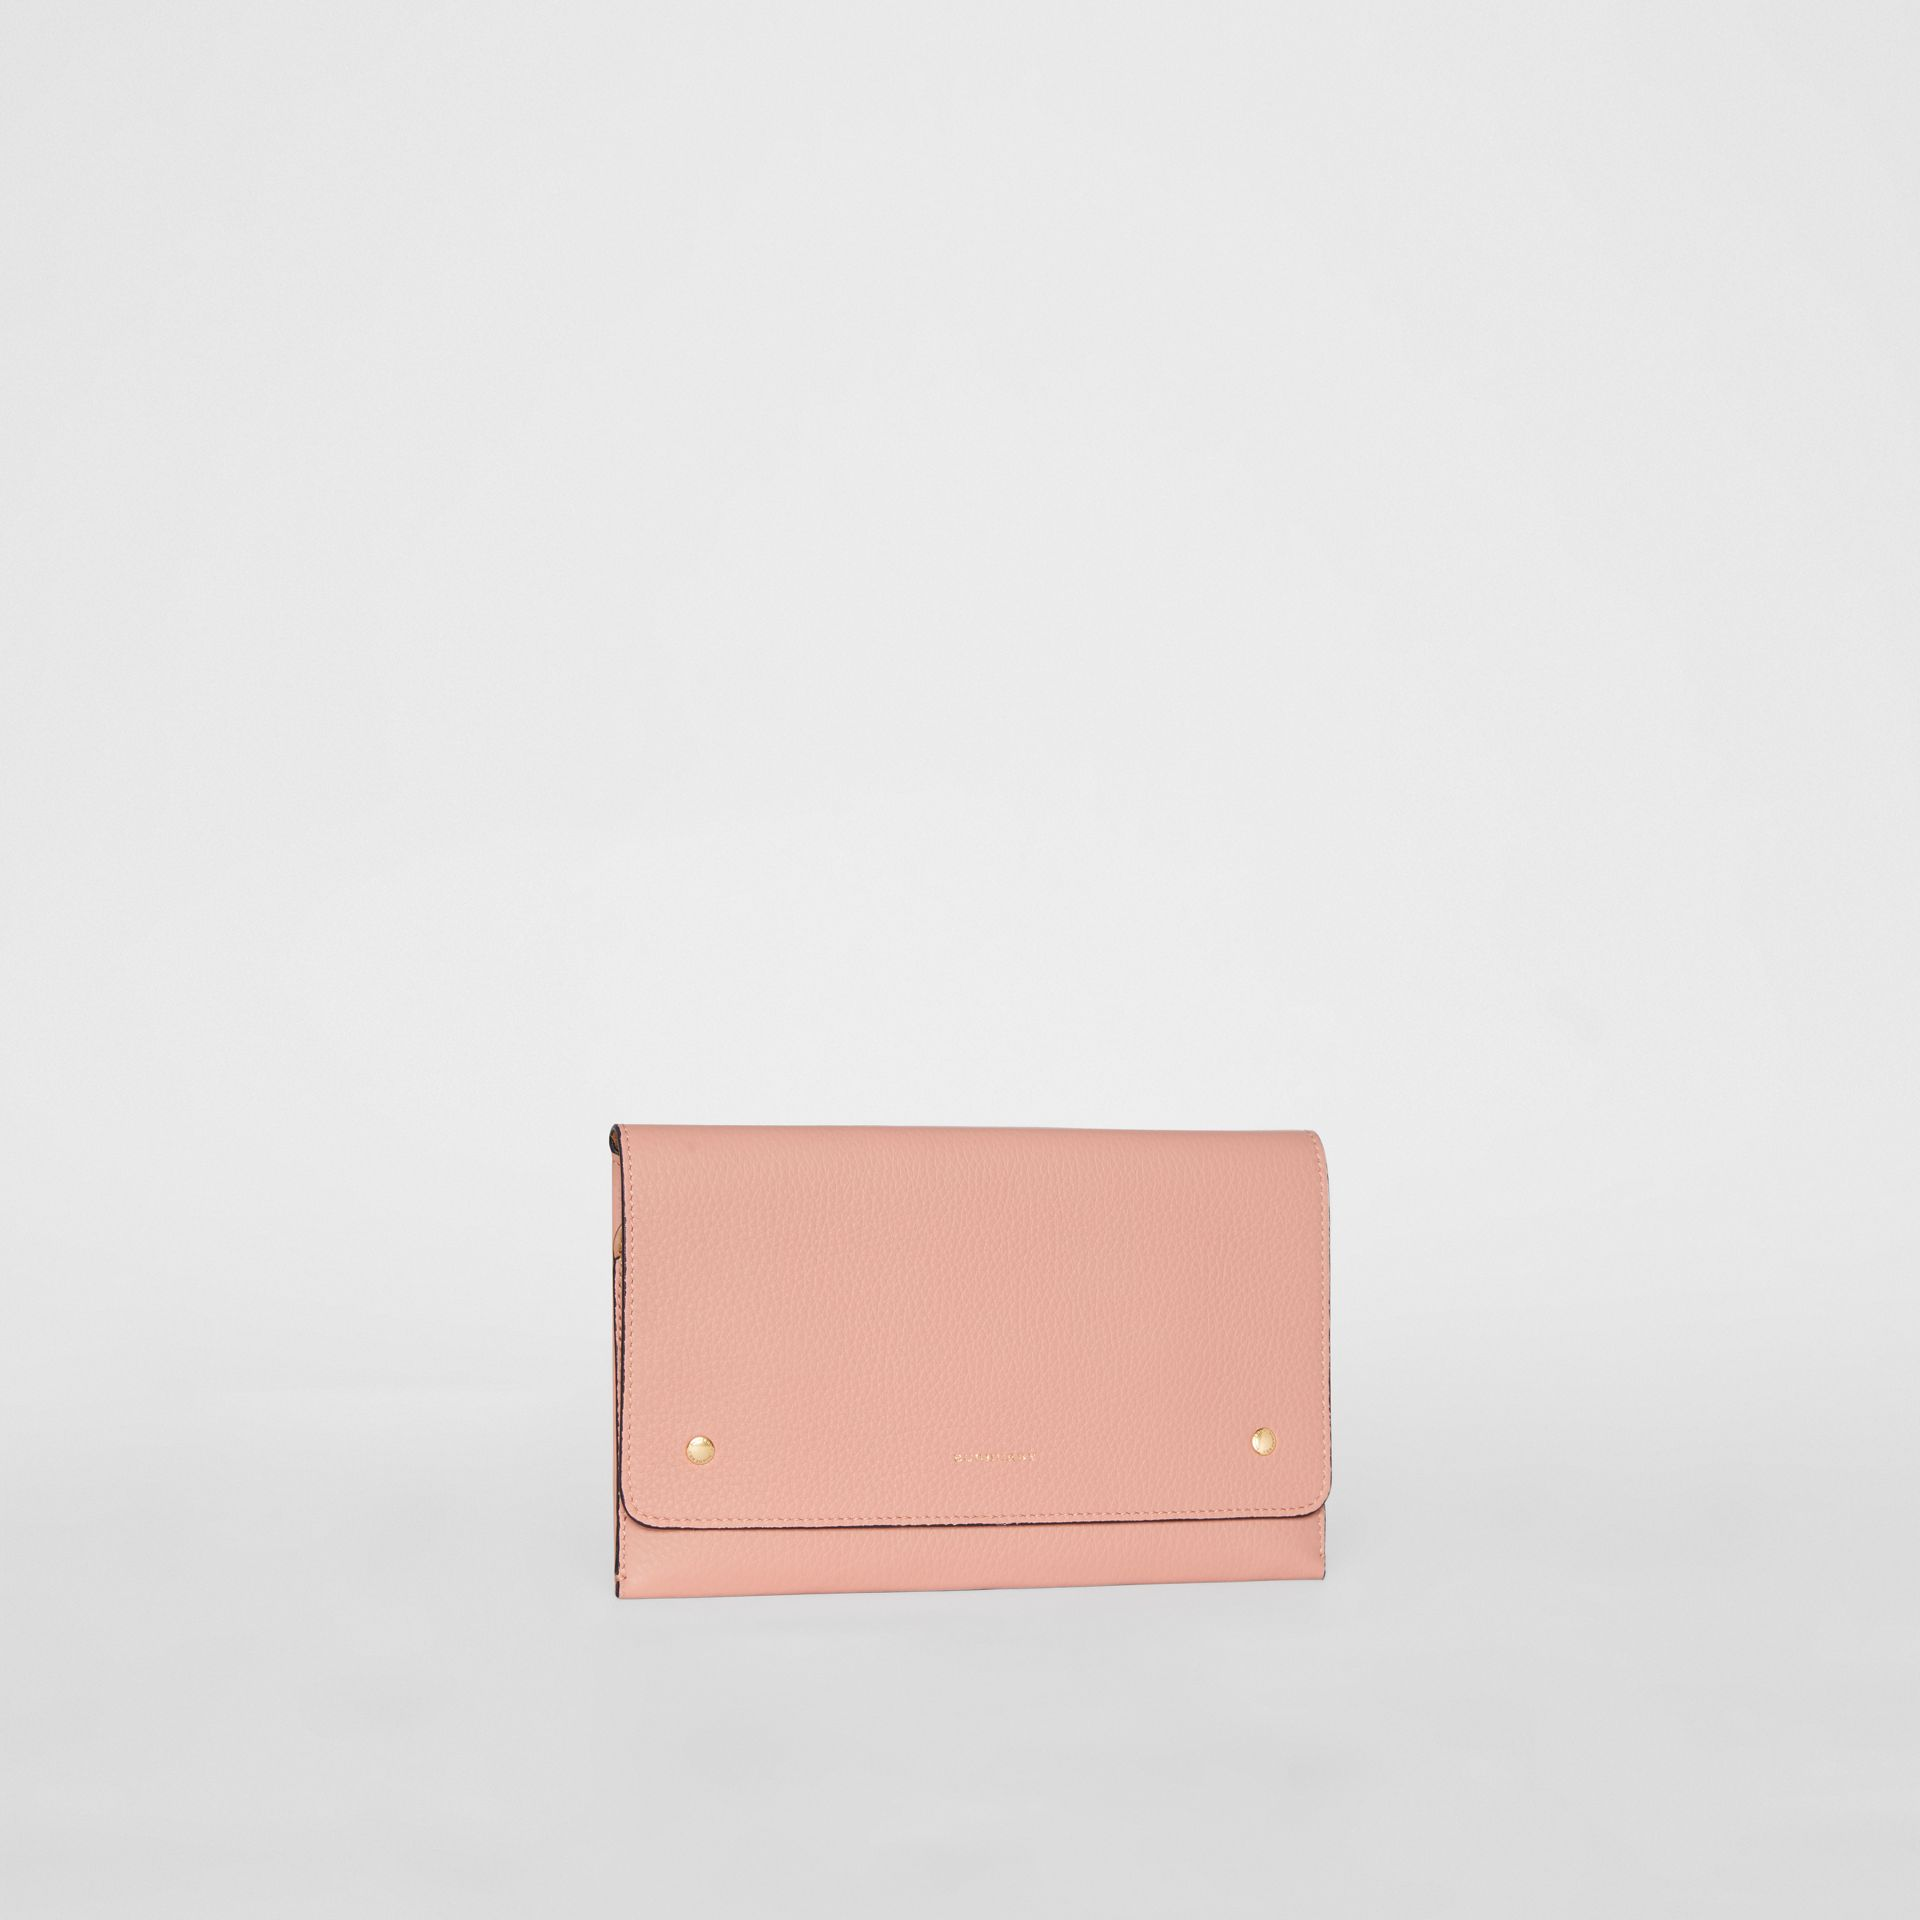 Two-tone Leather Wristlet Clutch in Ash Rose - Women | Burberry Canada - gallery image 5